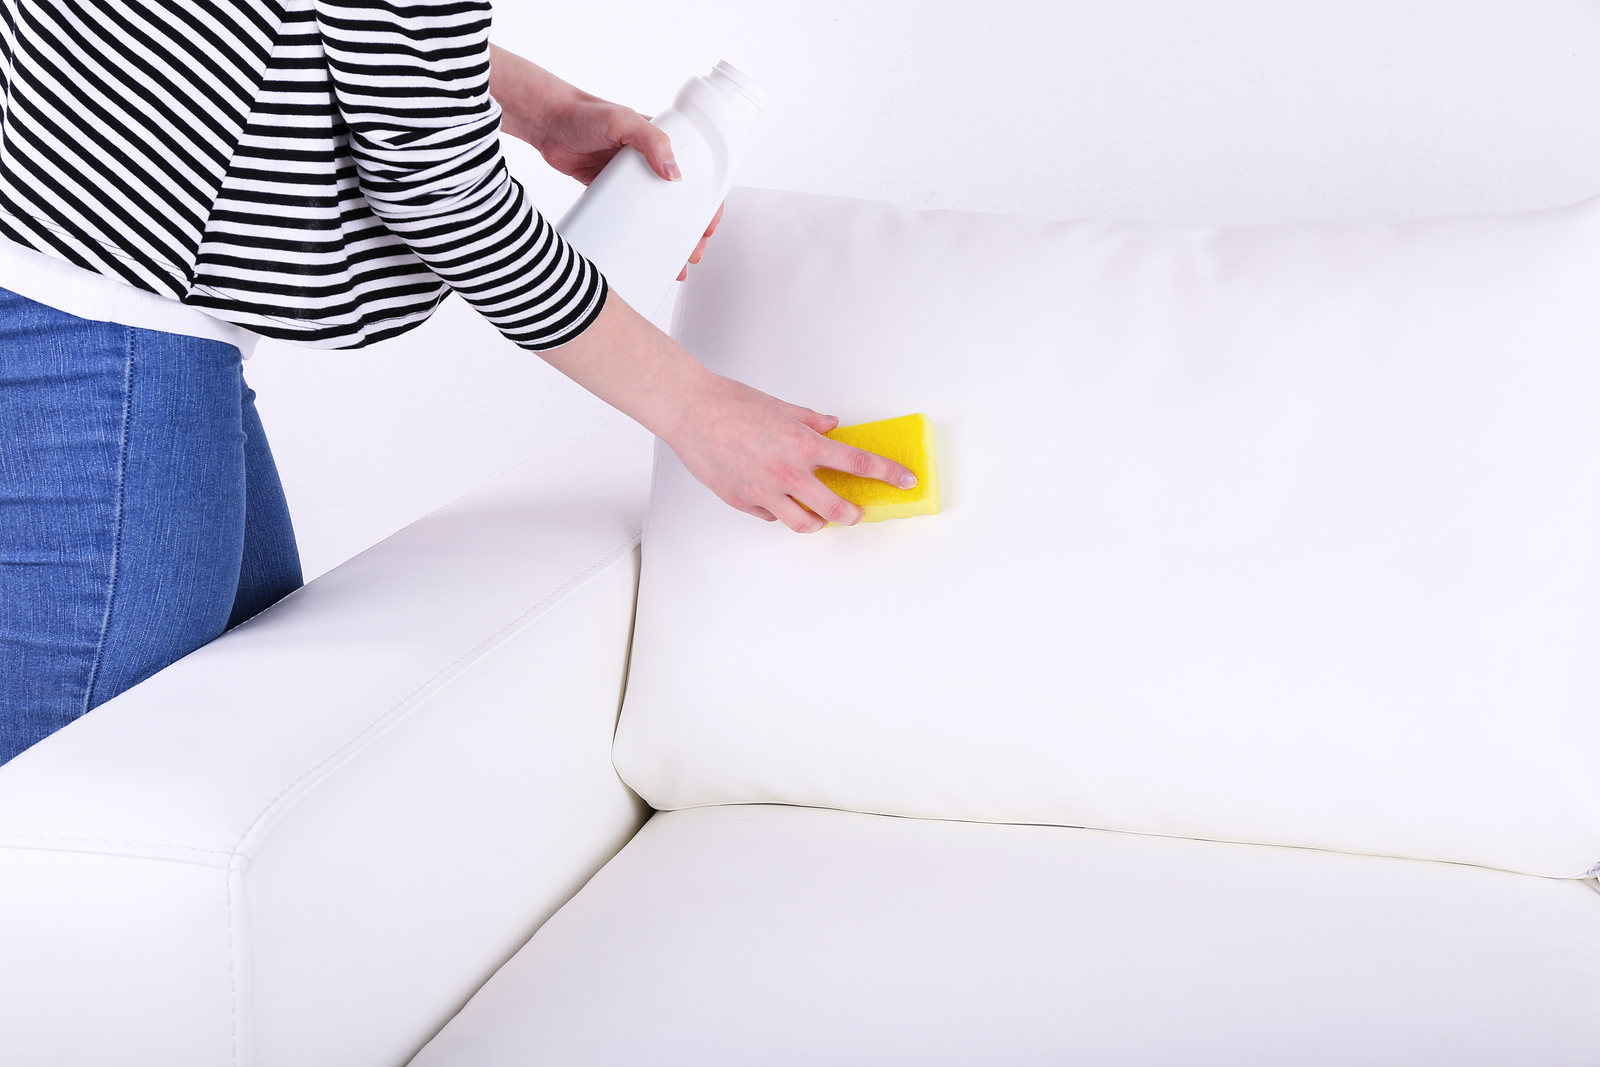 bigstock-Cleaning-white-sofa-65850382.jpg